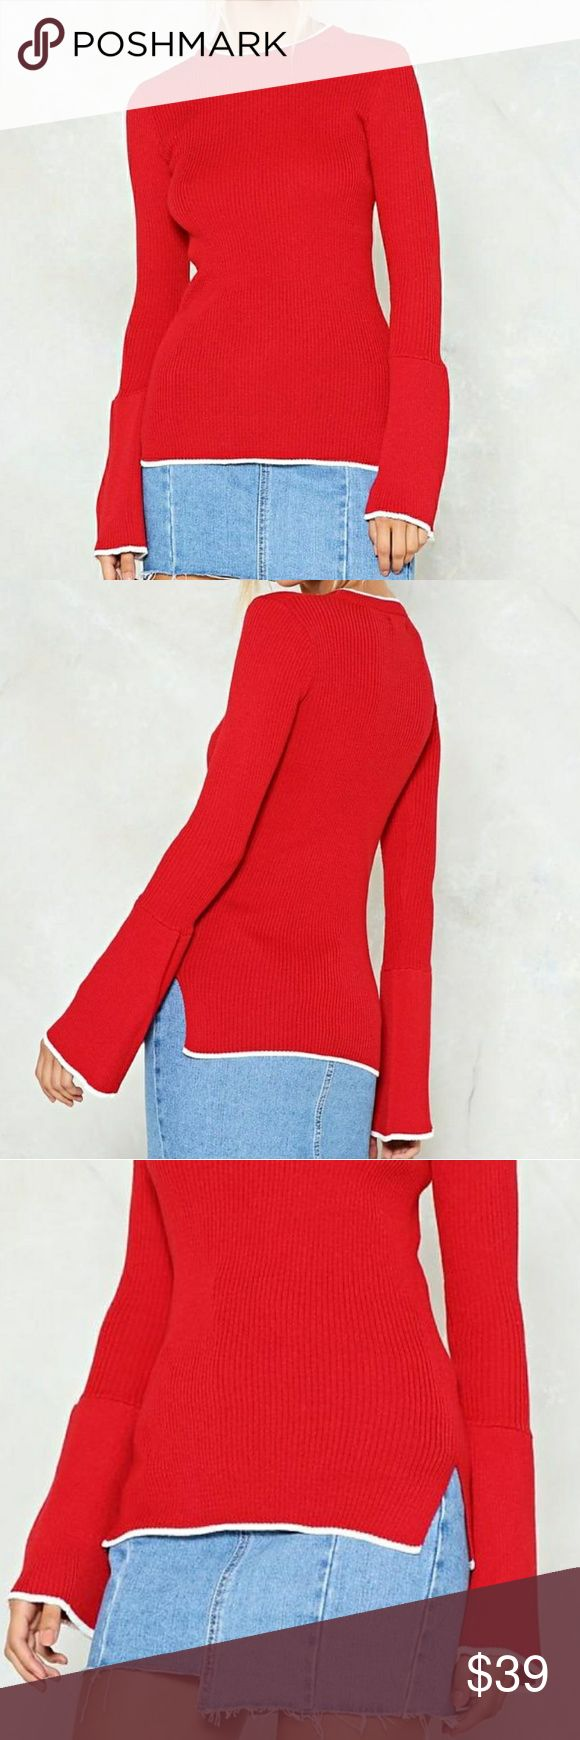 SALE! NWT RIBBED BELL SLEEVE TUNIC SWEATER New with tags! Ribbed knit sweater with high boat neckline, contrast white trim, small slit sides, oversized lower half of sleeves. Size 6, would fit small or medium. Gorgeous red. Light to medium weight. Similar to anthropologie, urban outfitters, j.crew, free people, madewell. Reasonable offers welcome! I also send private offers if you bundle ;) SELECT SIZE 6 AT CHECKOUT ONLY ONE ITEM FOR SALE :) Nasty Gal Sweaters